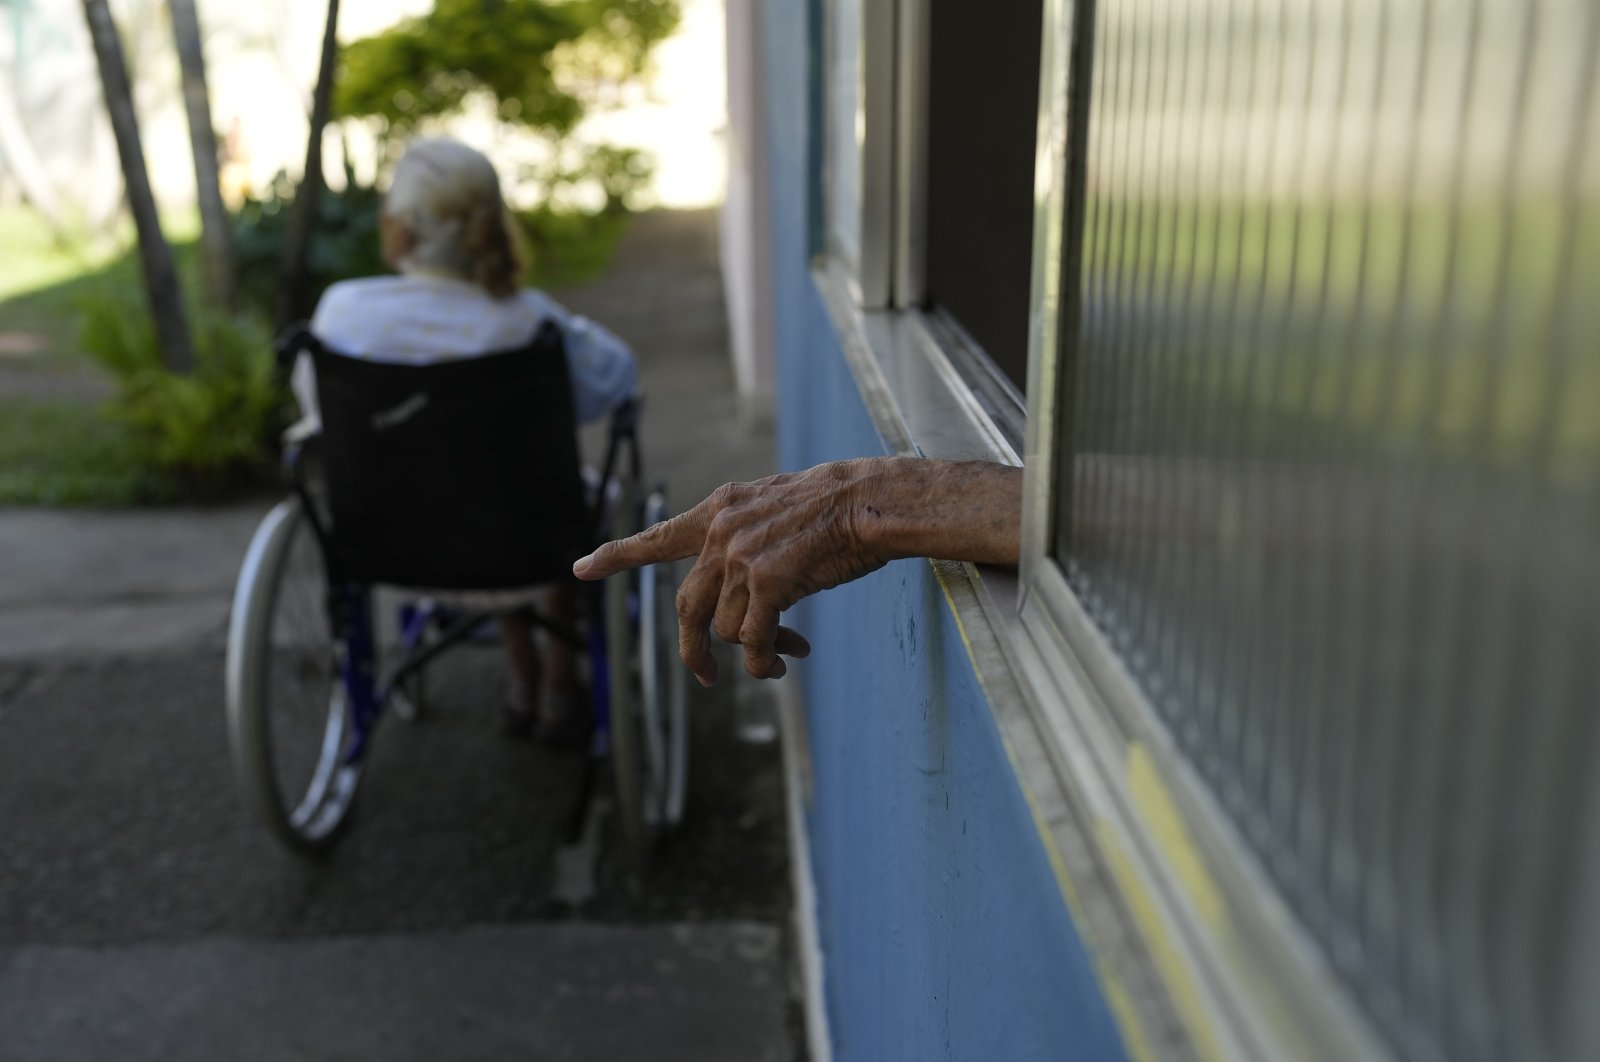 A man puts his hand out a window during a third dose COVID-19 vaccination campaign for elderly residents in long-term care institutions, at Casa de Repouso Laco de Ouro nursing home in Rio de Janeiro, Brazil, Thursday, Sept. 2, 2021. (AP Photo)